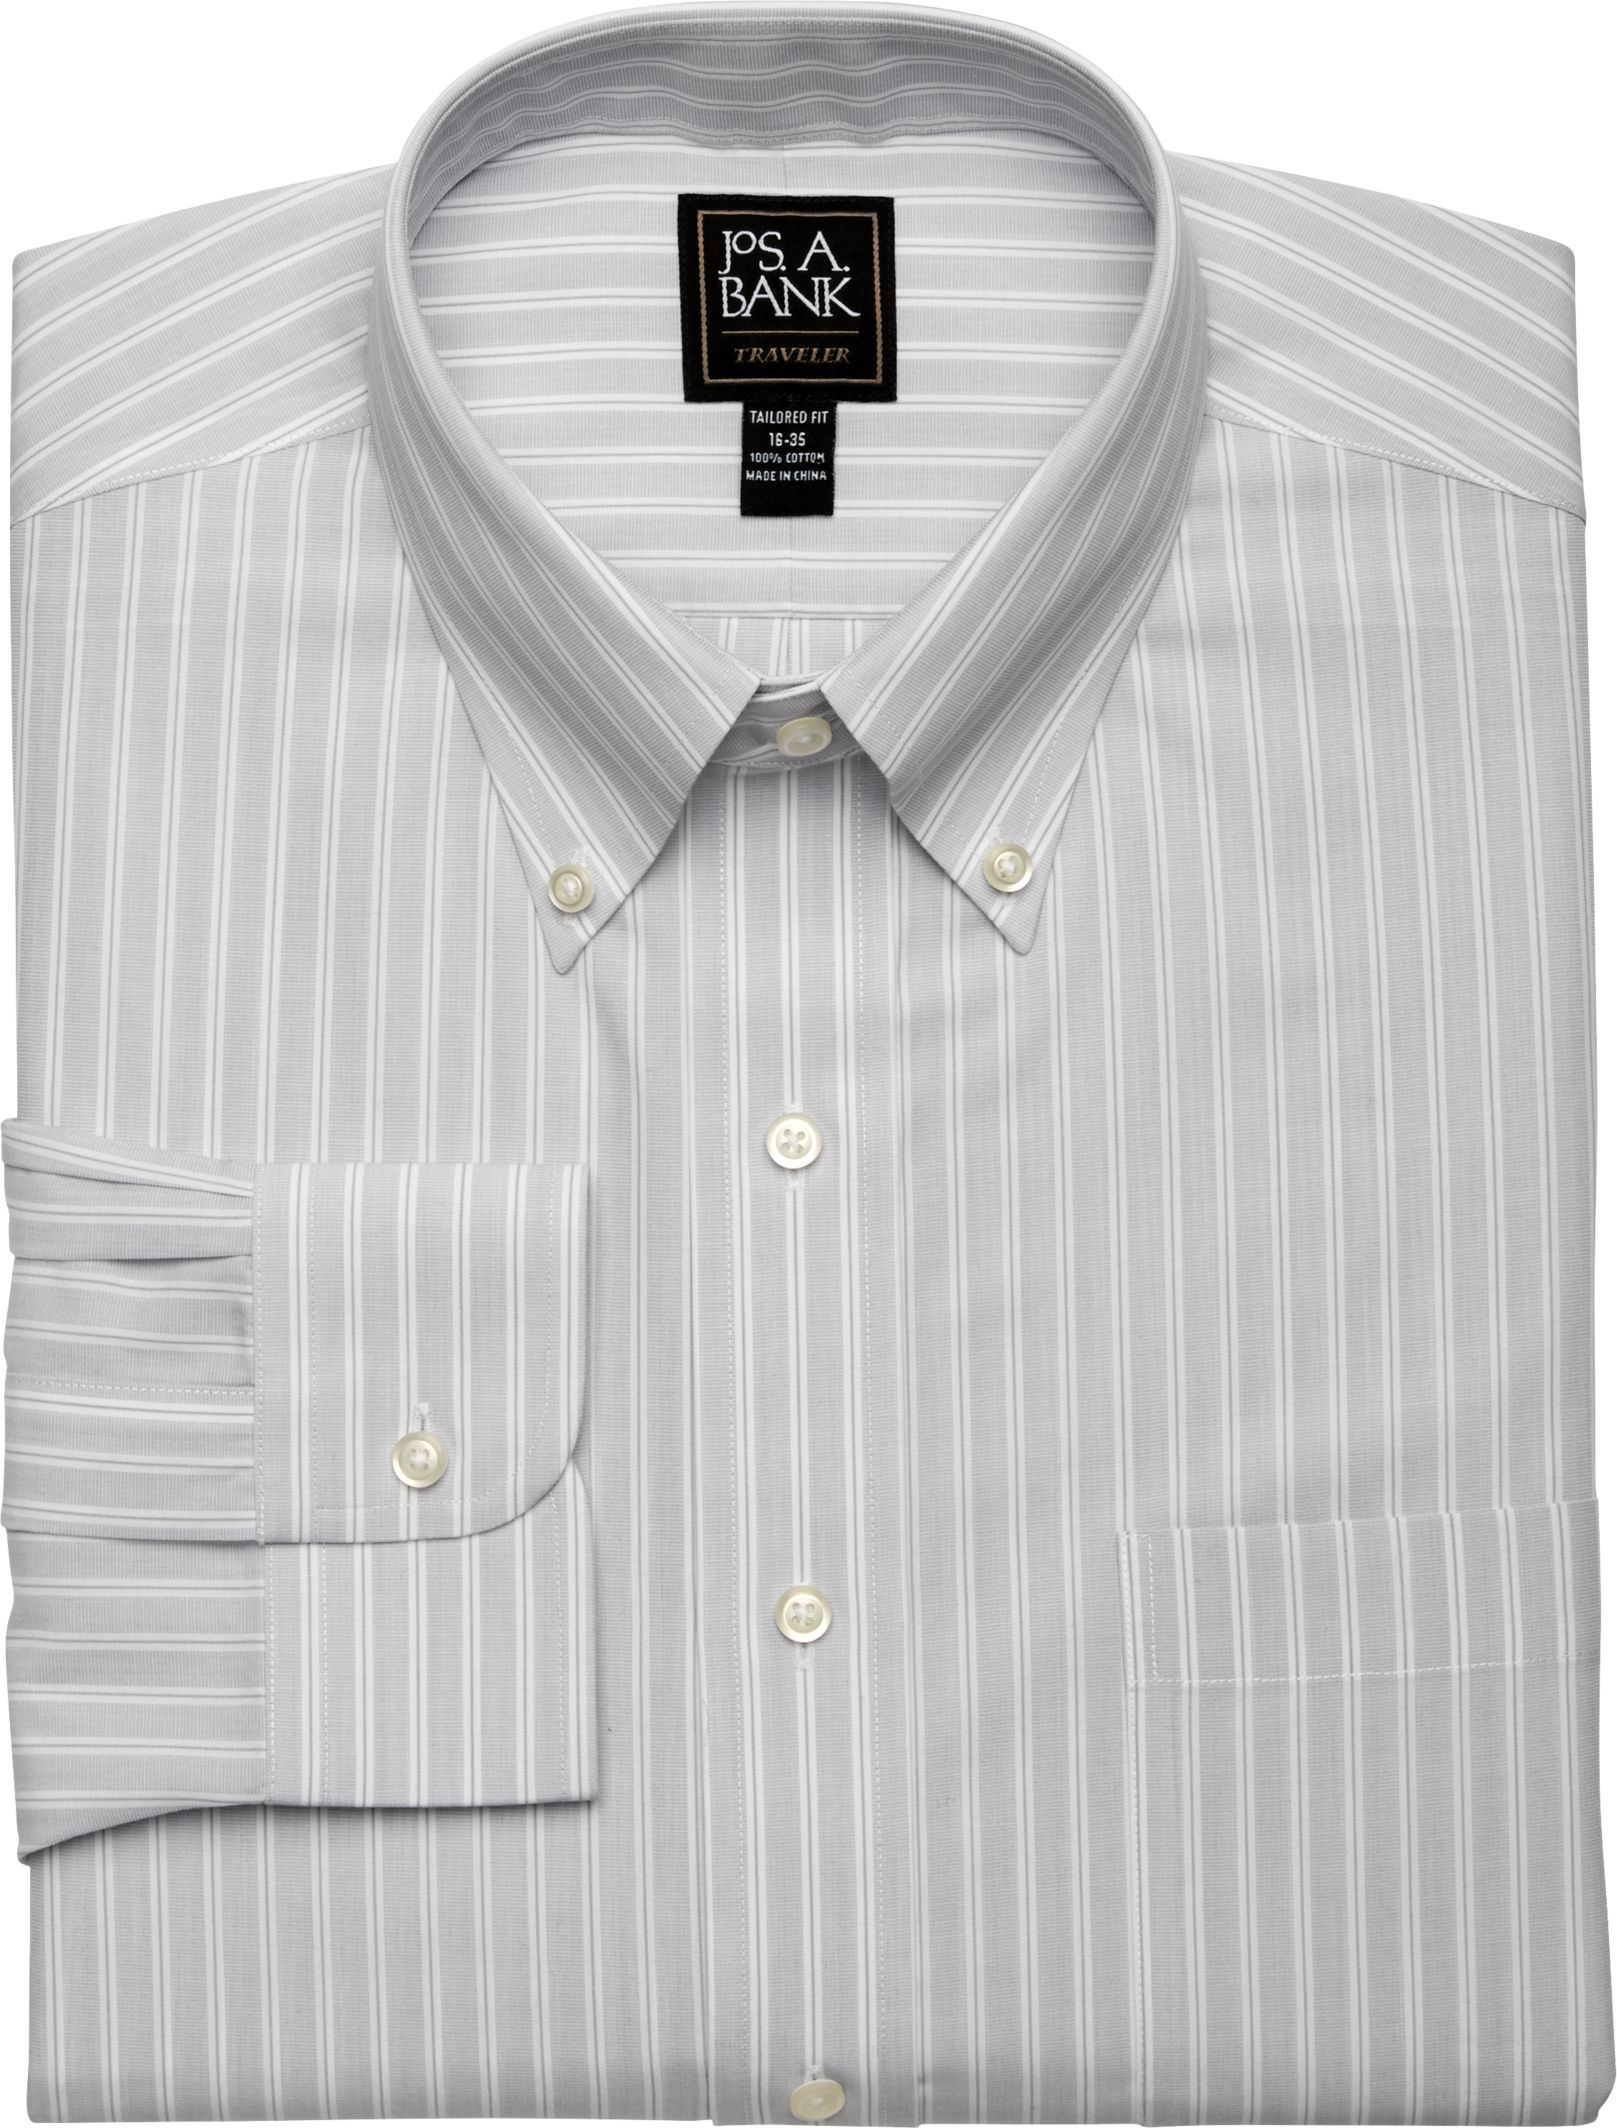 Traveler Collection Tailored Fit Button-Down Collar Stripe Dress Shirt - Big & Tall